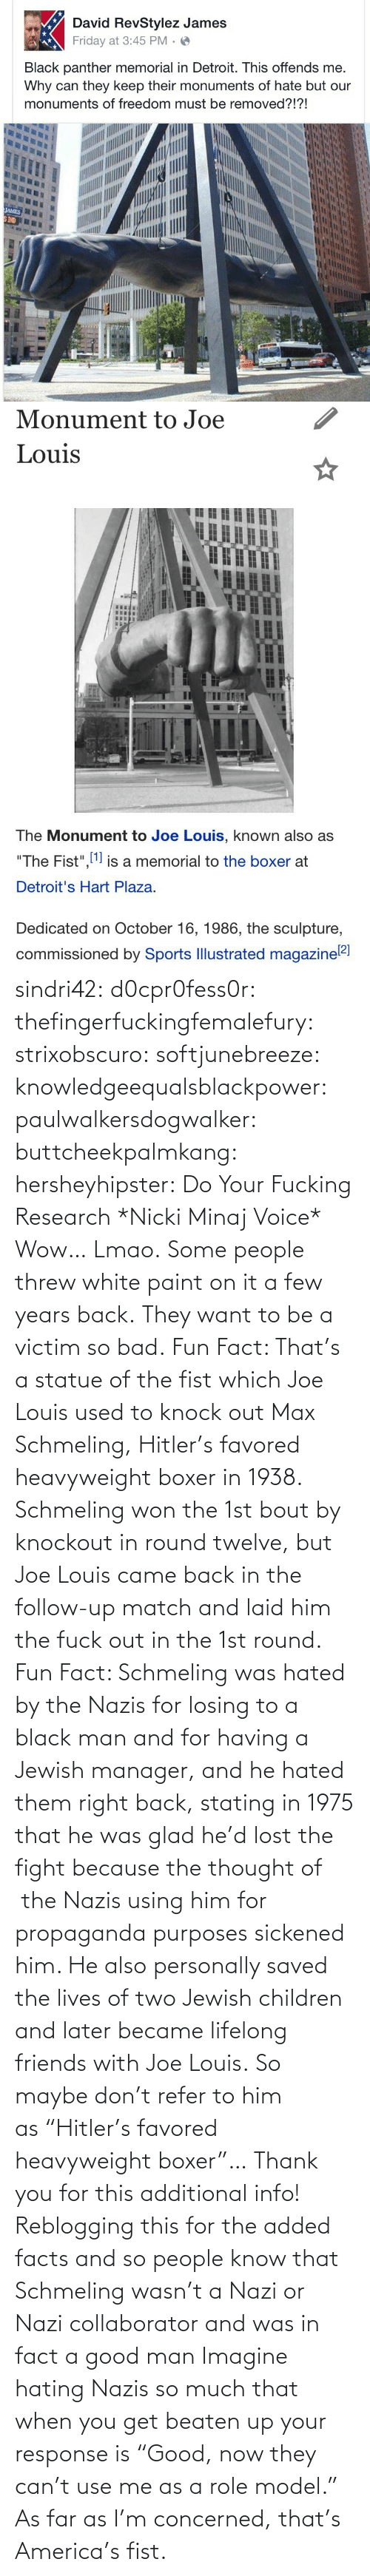 "Your: sindri42:  d0cpr0fess0r:  thefingerfuckingfemalefury:  strixobscuro:  softjunebreeze:  knowledgeequalsblackpower:  paulwalkersdogwalker:   buttcheekpalmkang:   hersheyhipster:  Do Your Fucking Research *Nicki Minaj Voice*    Wow… Lmao.   Some people threw white paint on it a few years back.   They want to be a victim so bad.  Fun Fact: That's a statue of the fist which Joe Louis used to knock out Max Schmeling, Hitler's favored heavyweight boxer in 1938. Schmeling won the 1st bout by knockout in round twelve, but Joe Louis came back in the follow-up match and laid him the fuck out in the 1st round.  Fun Fact: Schmeling was hated by the Nazis for losing to a black man and for having a Jewish manager, and he hated them right back, stating in 1975 that he was glad he'd lost the fight because the thought of  the Nazis using him for propaganda purposes sickened him. He also personally saved the lives of two Jewish children and later became lifelong friends with Joe Louis. So maybe don't refer to him as ""Hitler's favored heavyweight boxer""…  Thank you for this additional info! Reblogging this for the added facts and so people know that Schmeling wasn't a Nazi or Nazi collaborator and was in fact a good man   Imagine hating Nazis so much that when you get beaten up your response is ""Good, now they can't use me as a role model.""  As far as I'm concerned, that's America's fist."